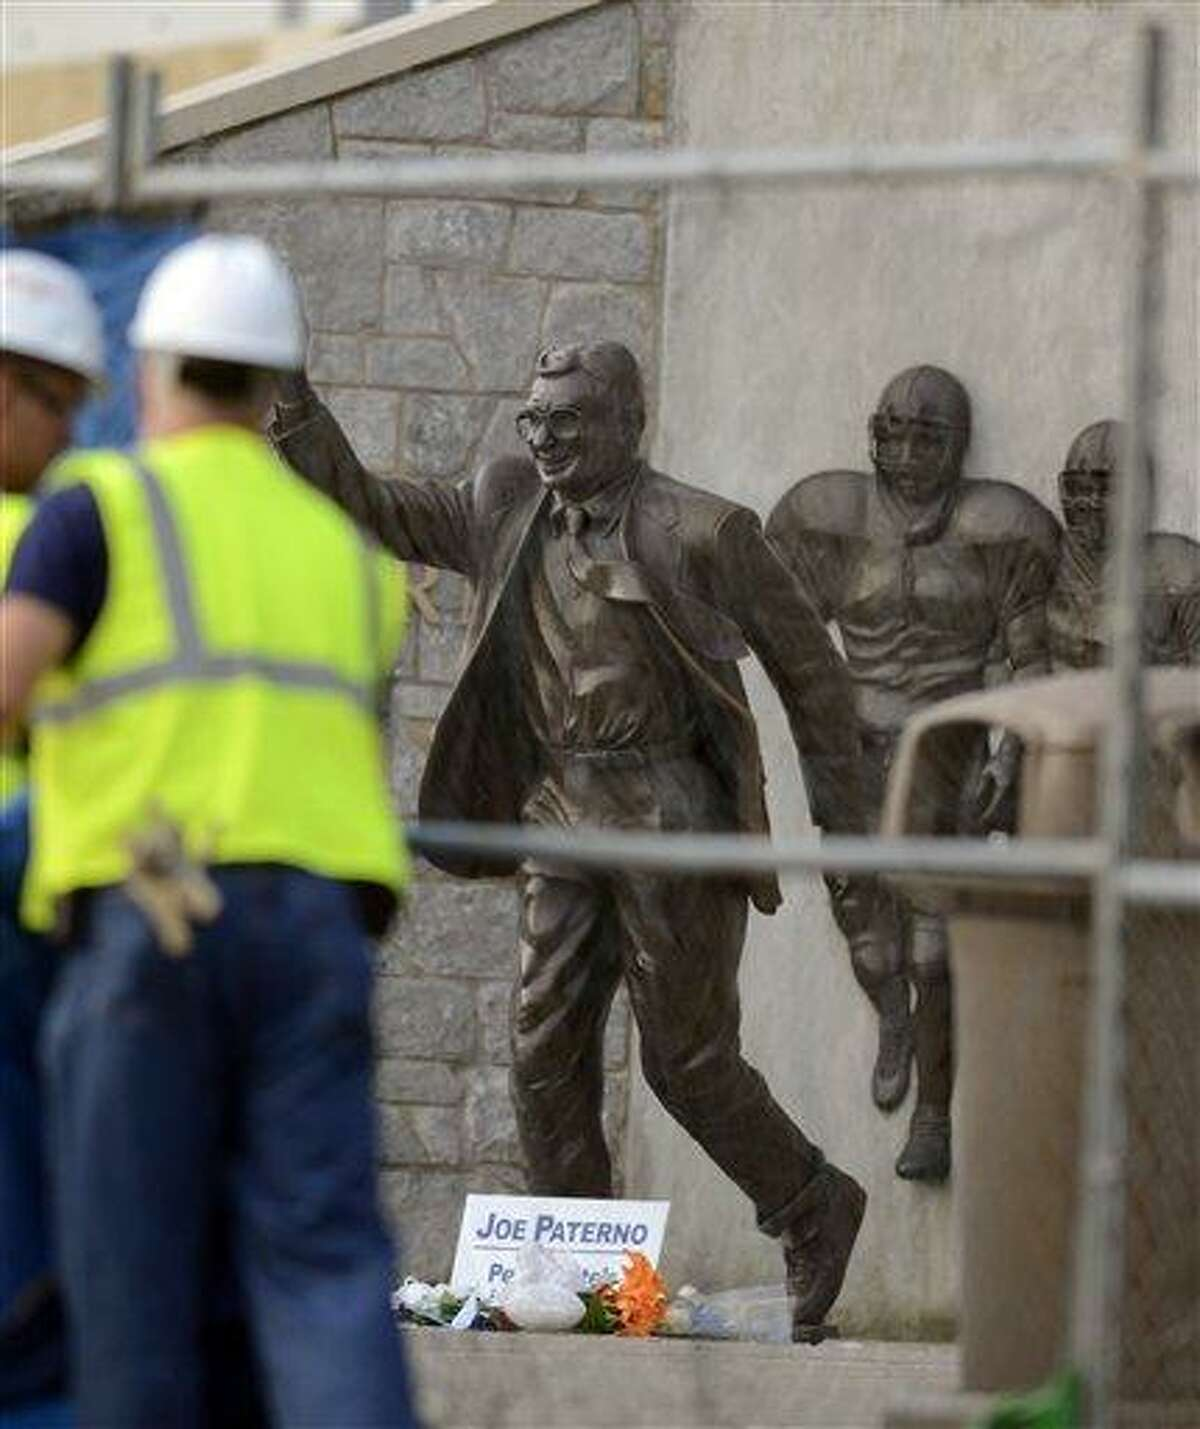 Workers place a tarp on a fence in front of the statue of former Penn State football coach Joe Paterno before removing the statue Sunday in State College, Pa. Associated Press